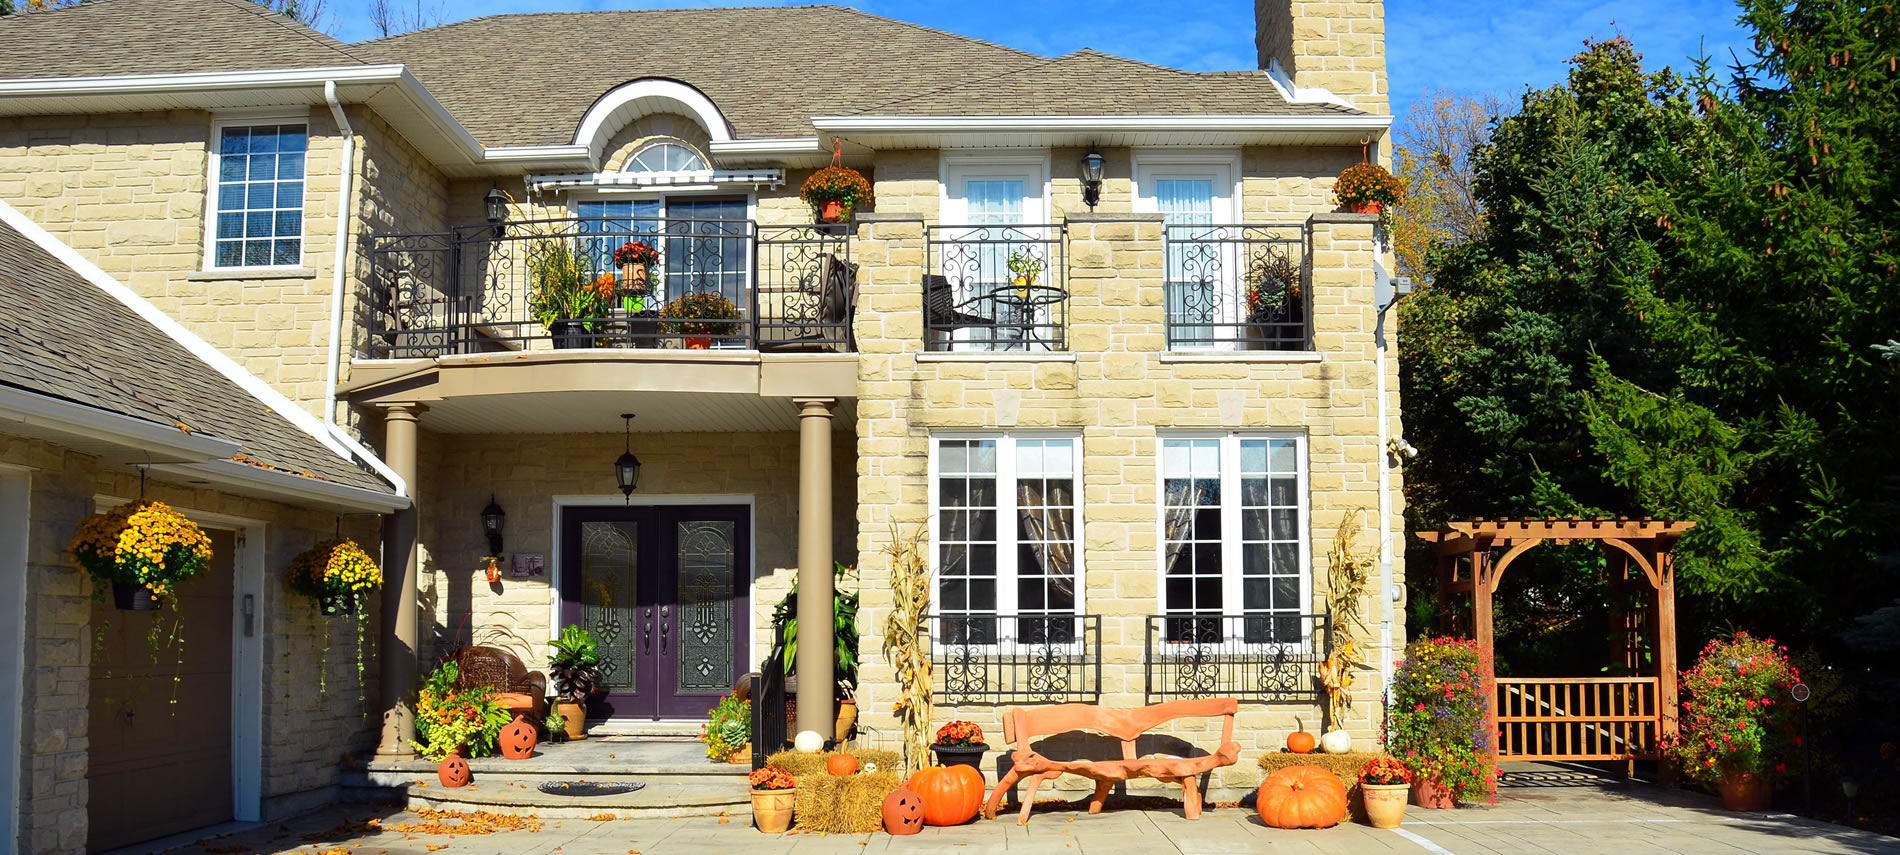 explorer house: bed and breakfast in niagara-on-the-lake